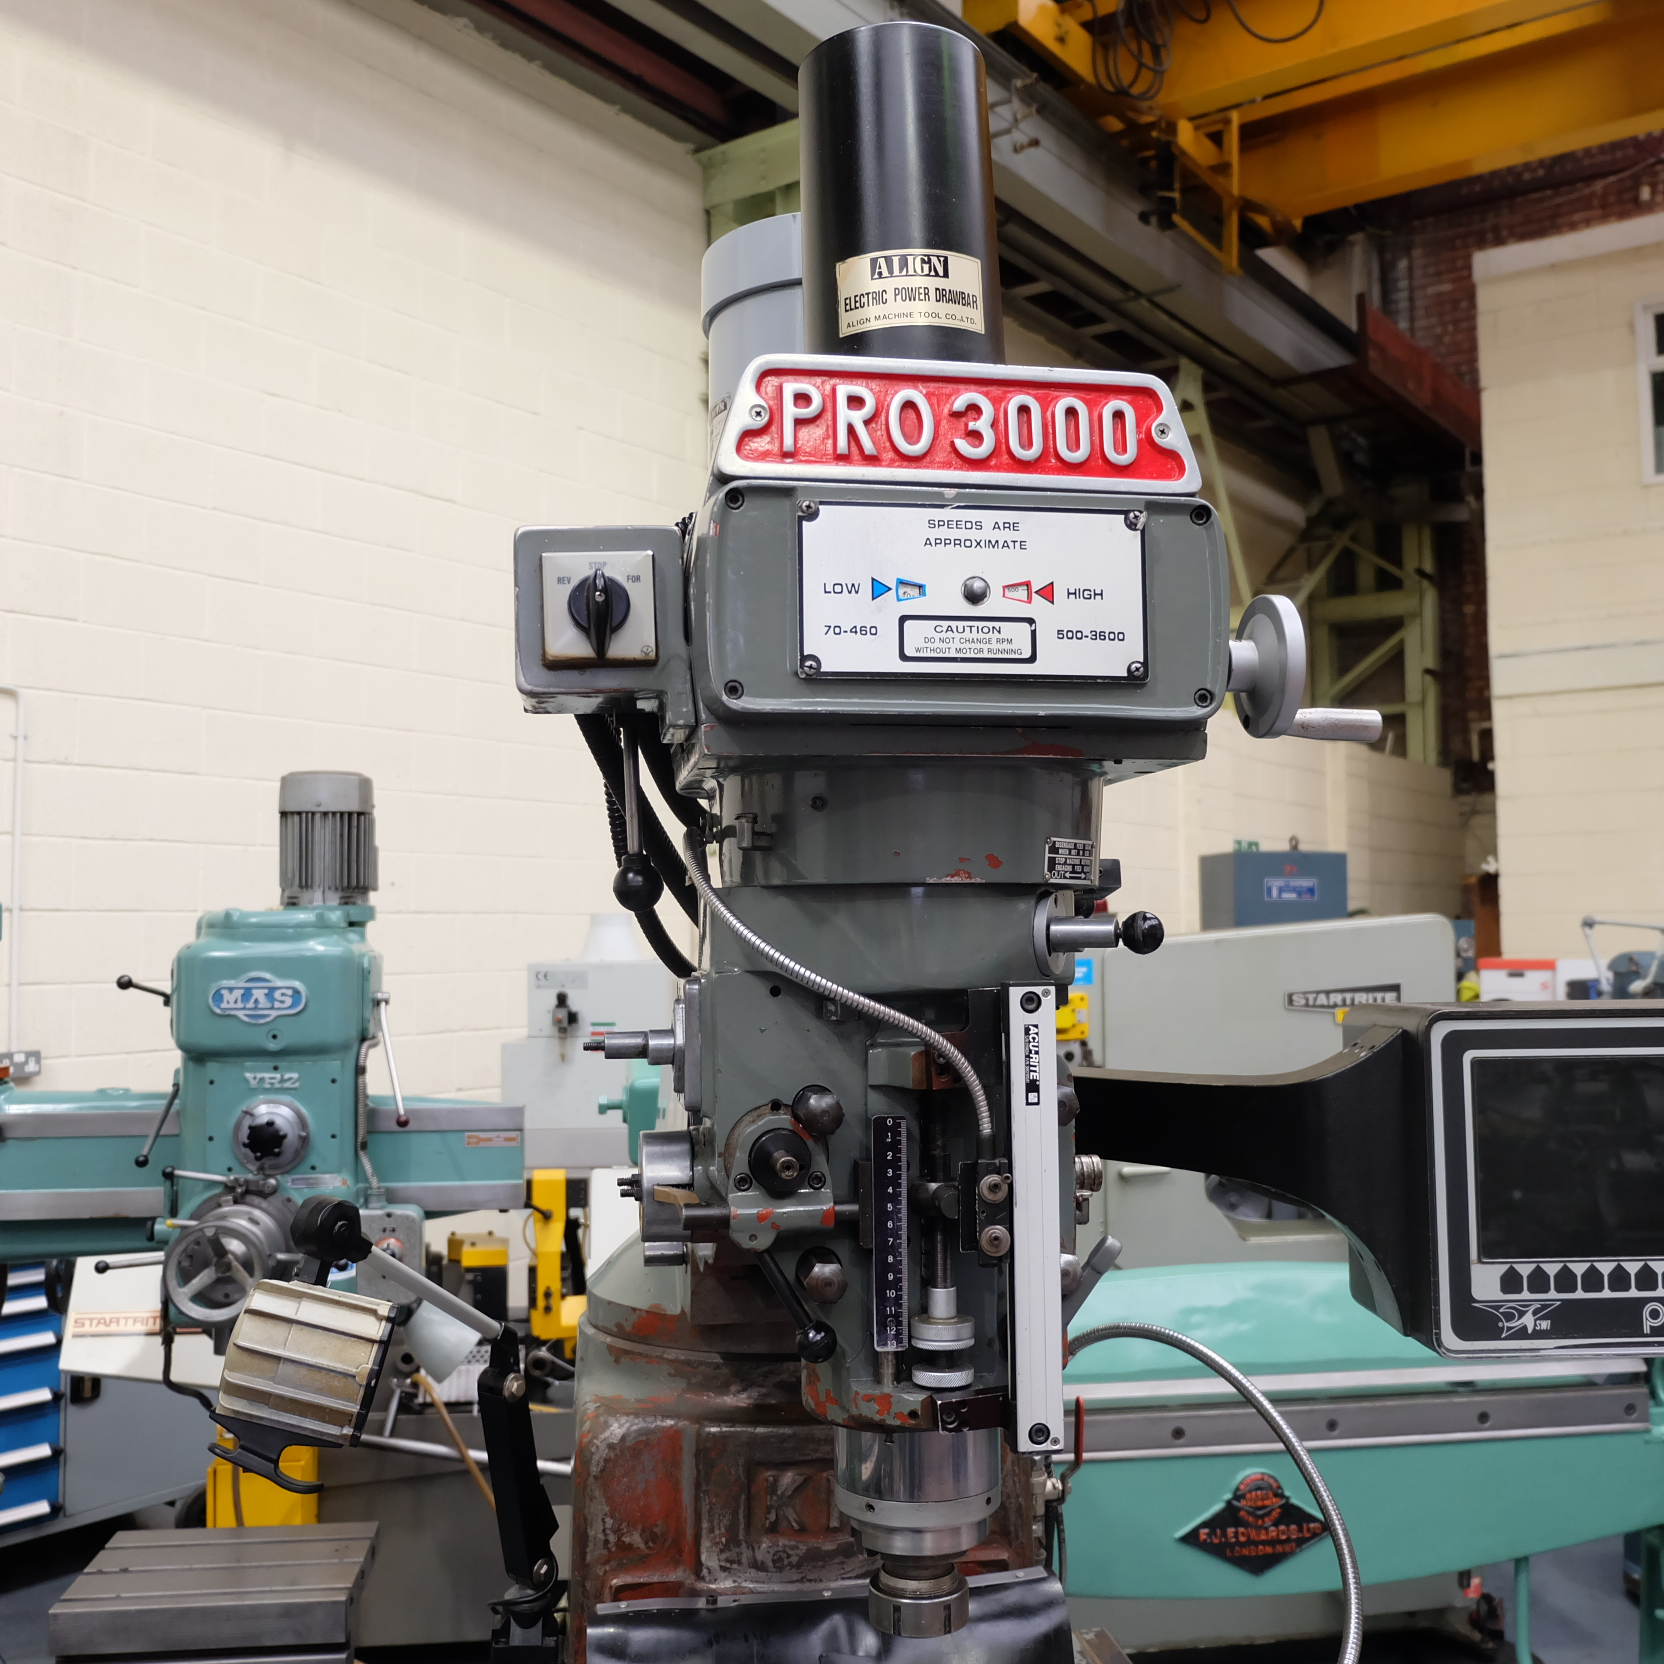 XYZ Pro3000: Turret Mill. With Prototrak MX2 Two Axis Programmable Control. - Image 2 of 10